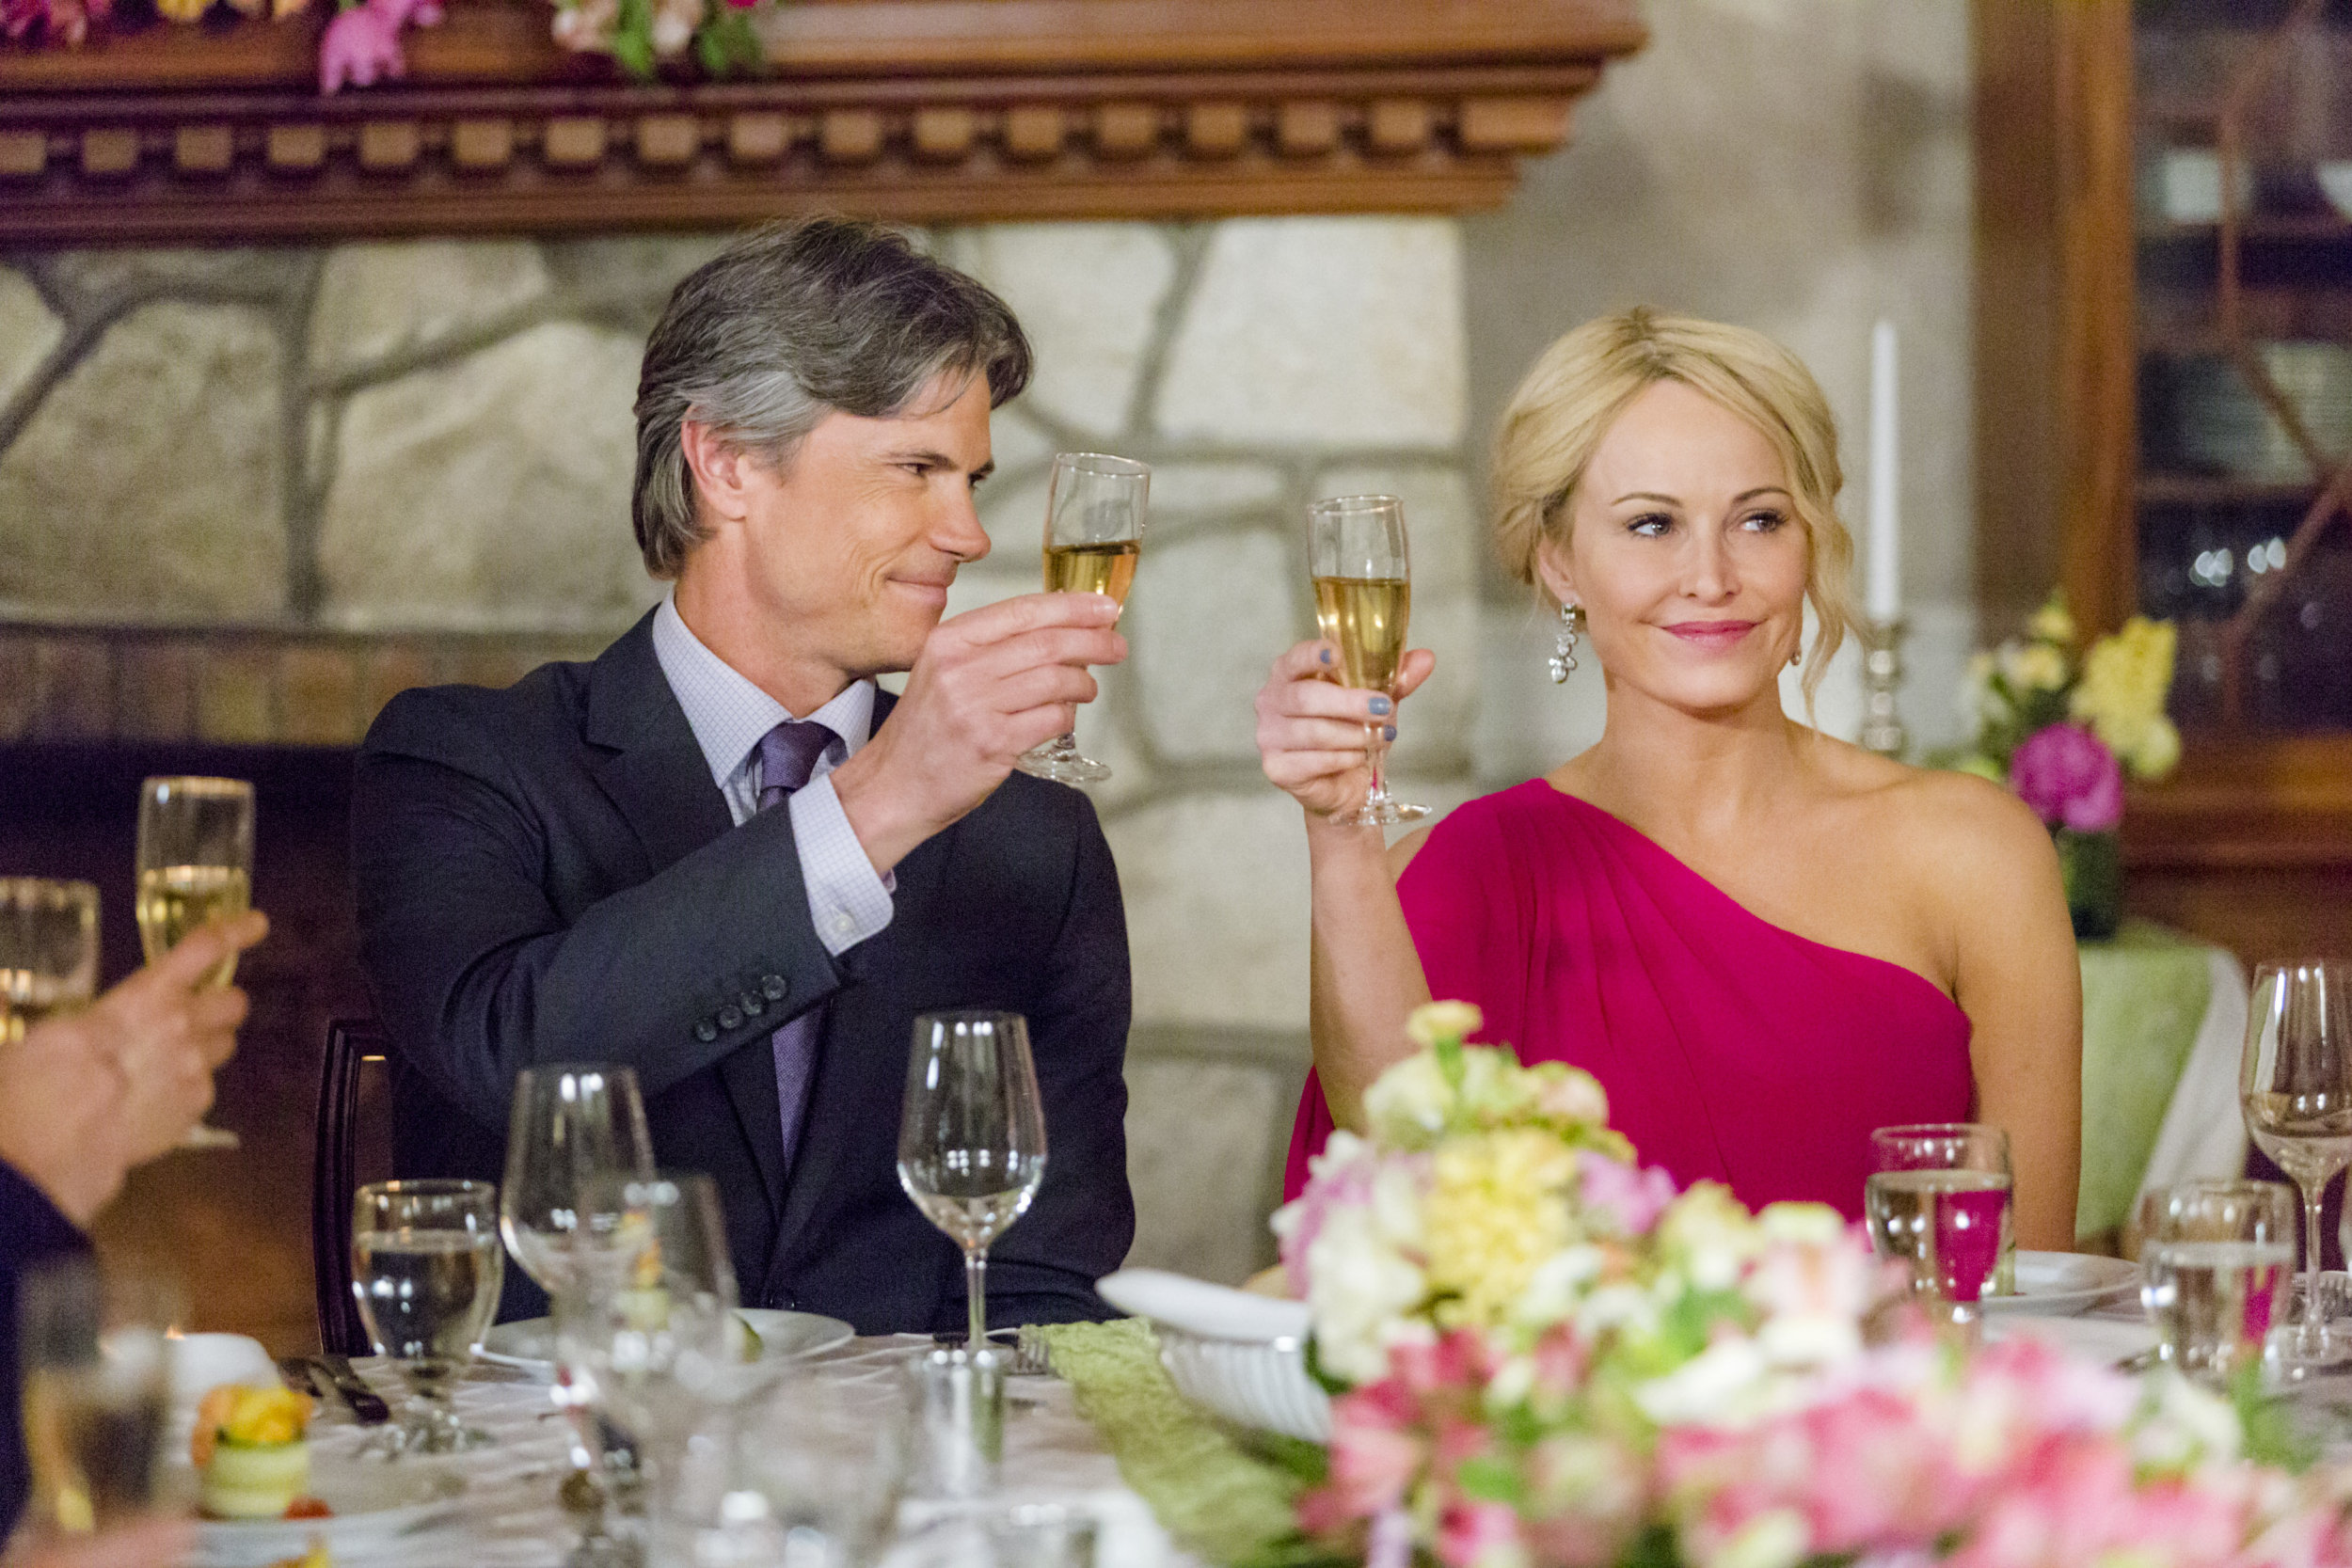 The Wedding March Cast The Wedding March Hallmark Channel